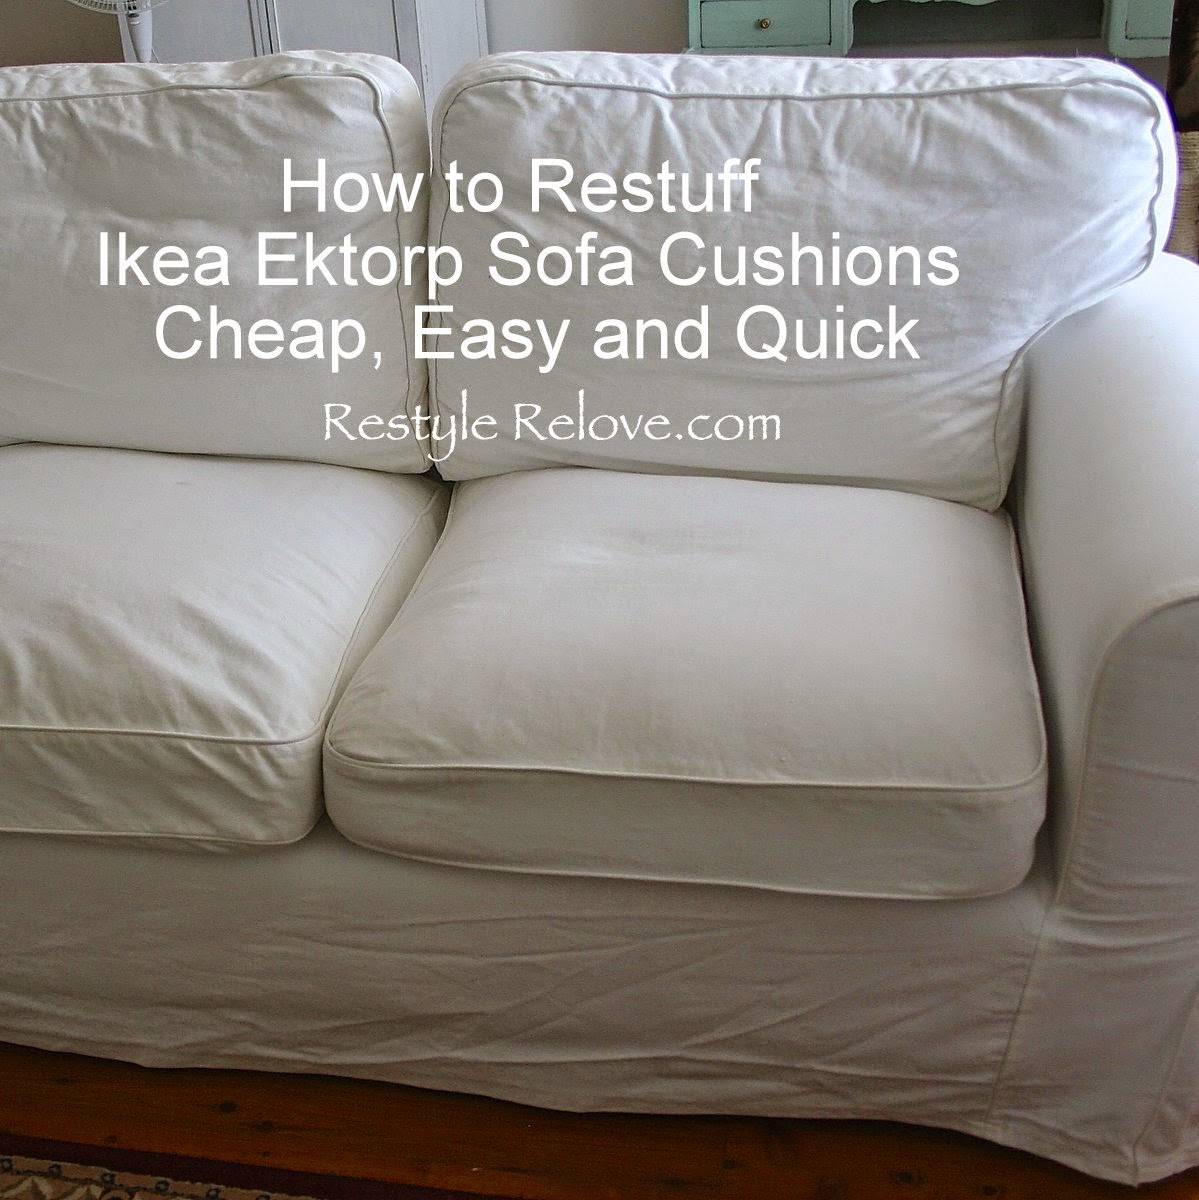 Kitchen Chair Cushions Ikea Restyle Relove How To Restuff Ikea Ektorp Sofa Cushions Cheap